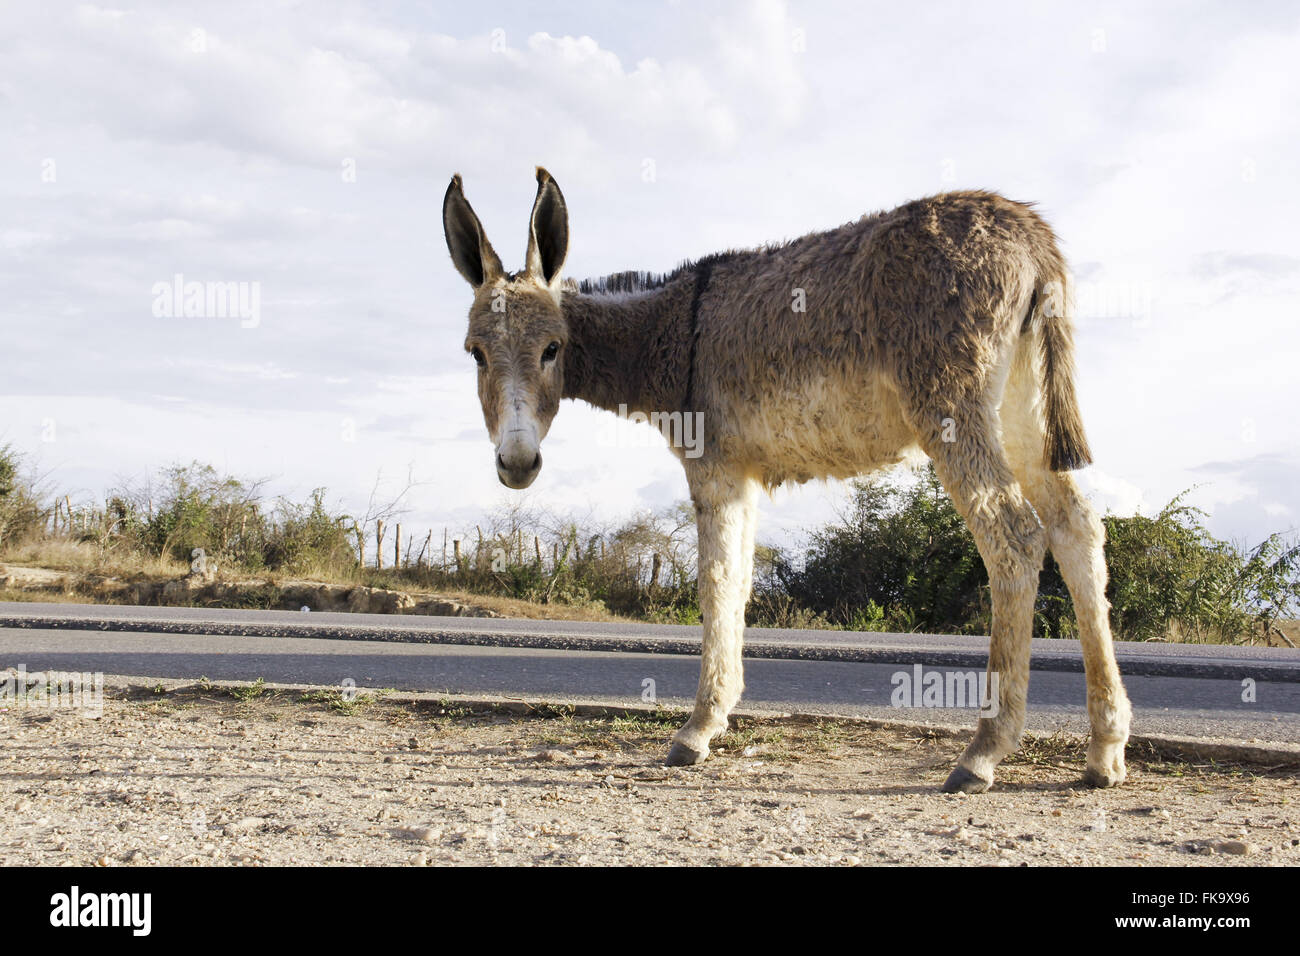 Hungry donkey on the edge of the highway - Stock Image